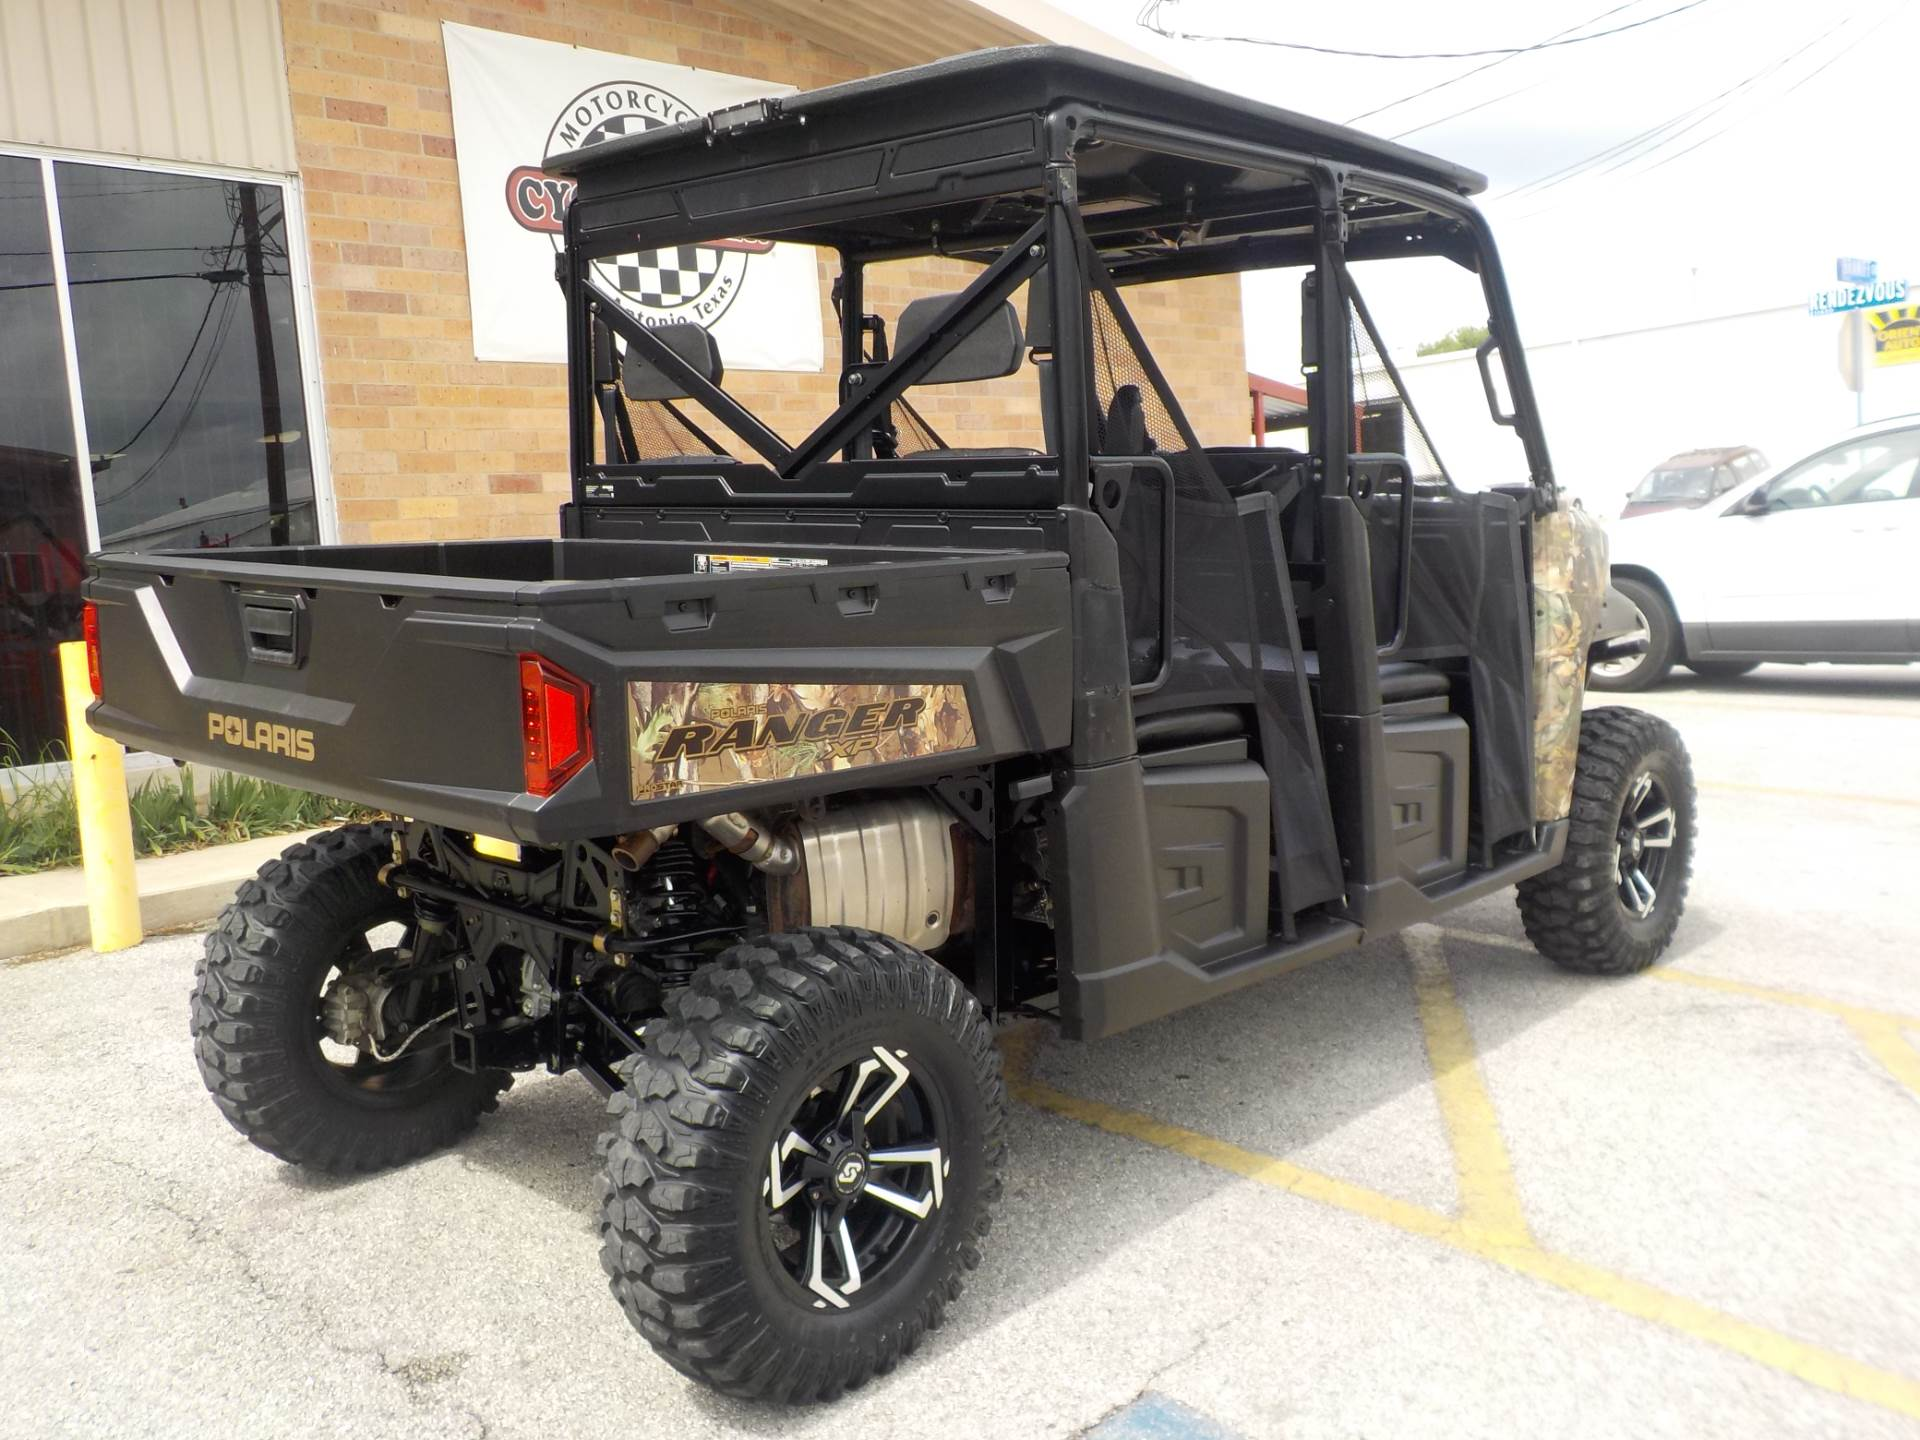 2017 polaris ranger crew xp 1000 eps for sale san antonio tx 4033. Black Bedroom Furniture Sets. Home Design Ideas